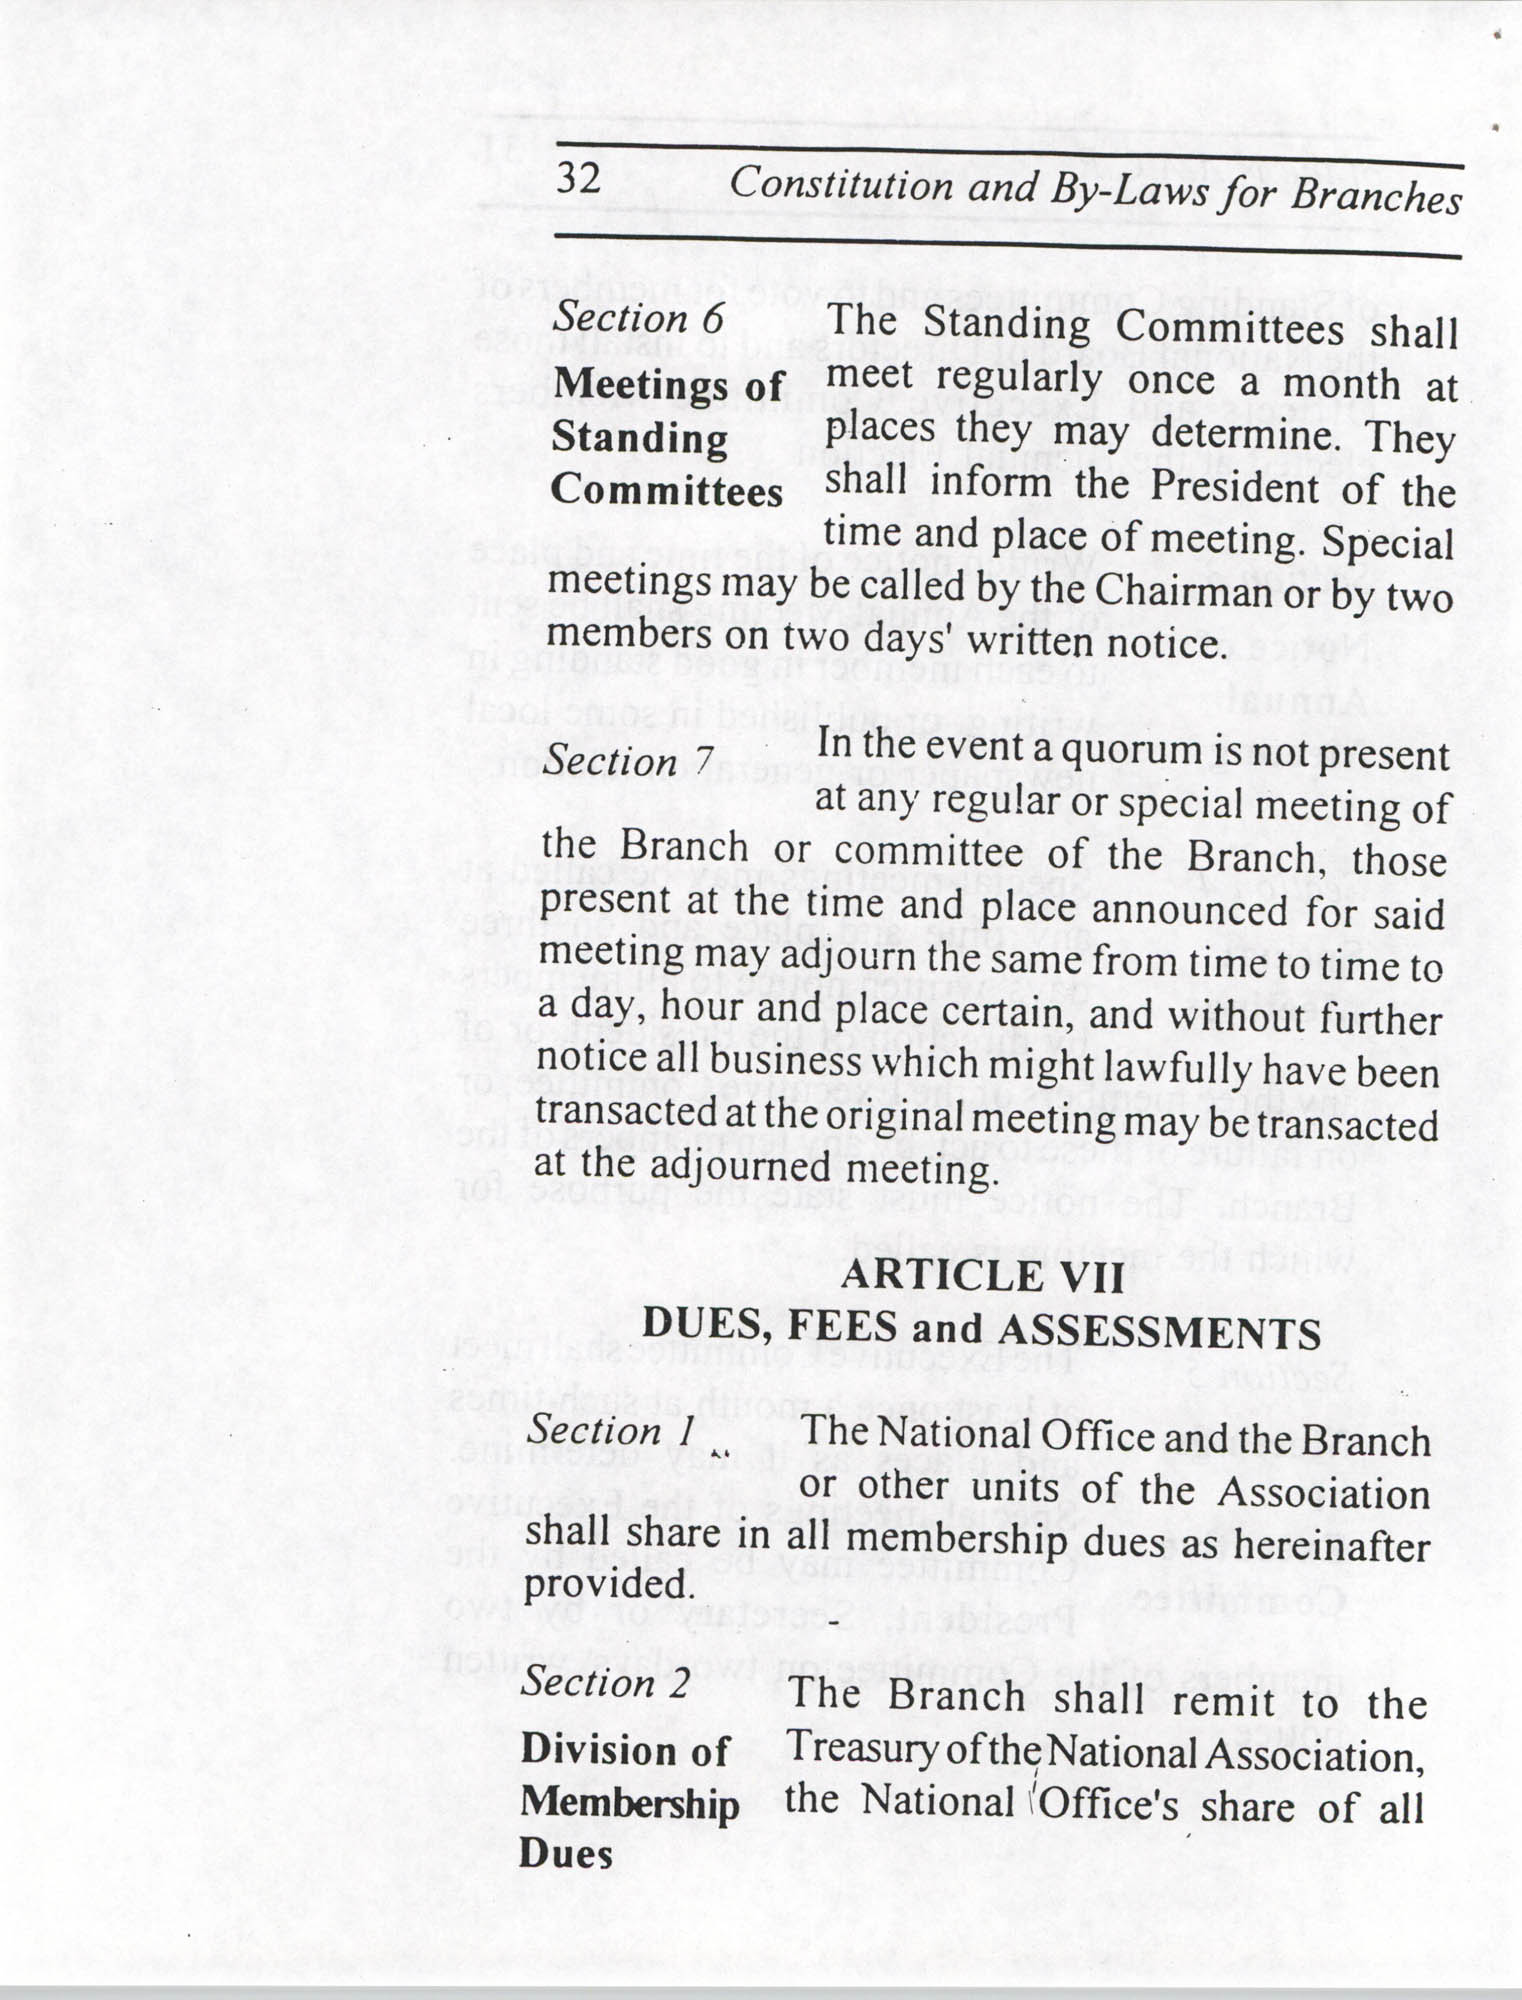 Constitution and By-Laws for Branches of the NAACP, July 1994, Page 32